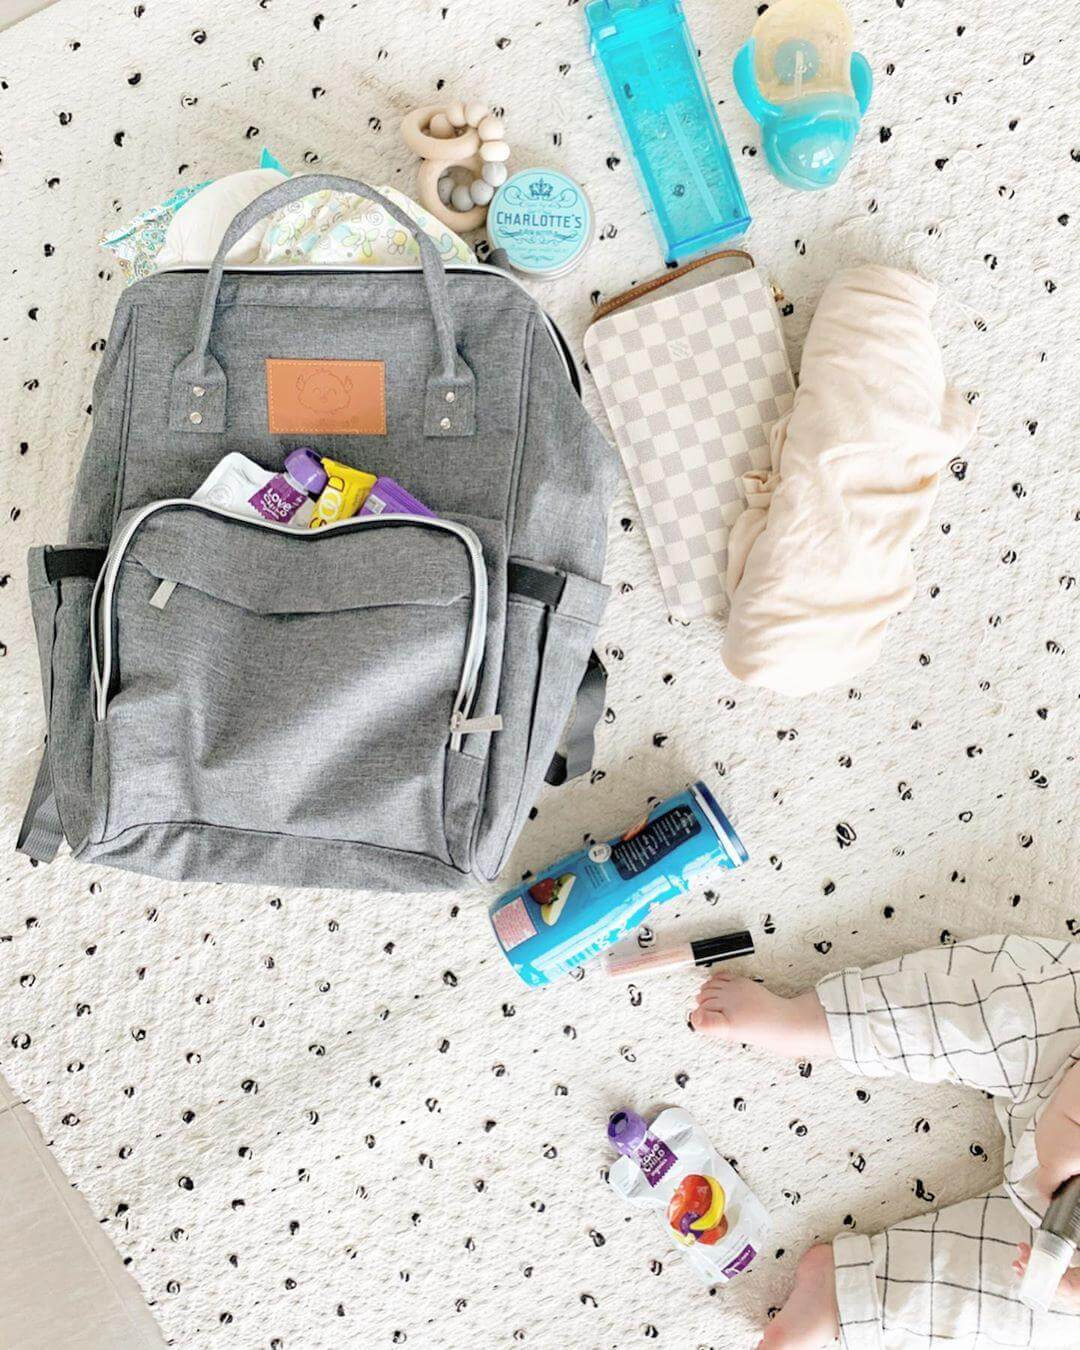 Win a Diaper Bag!